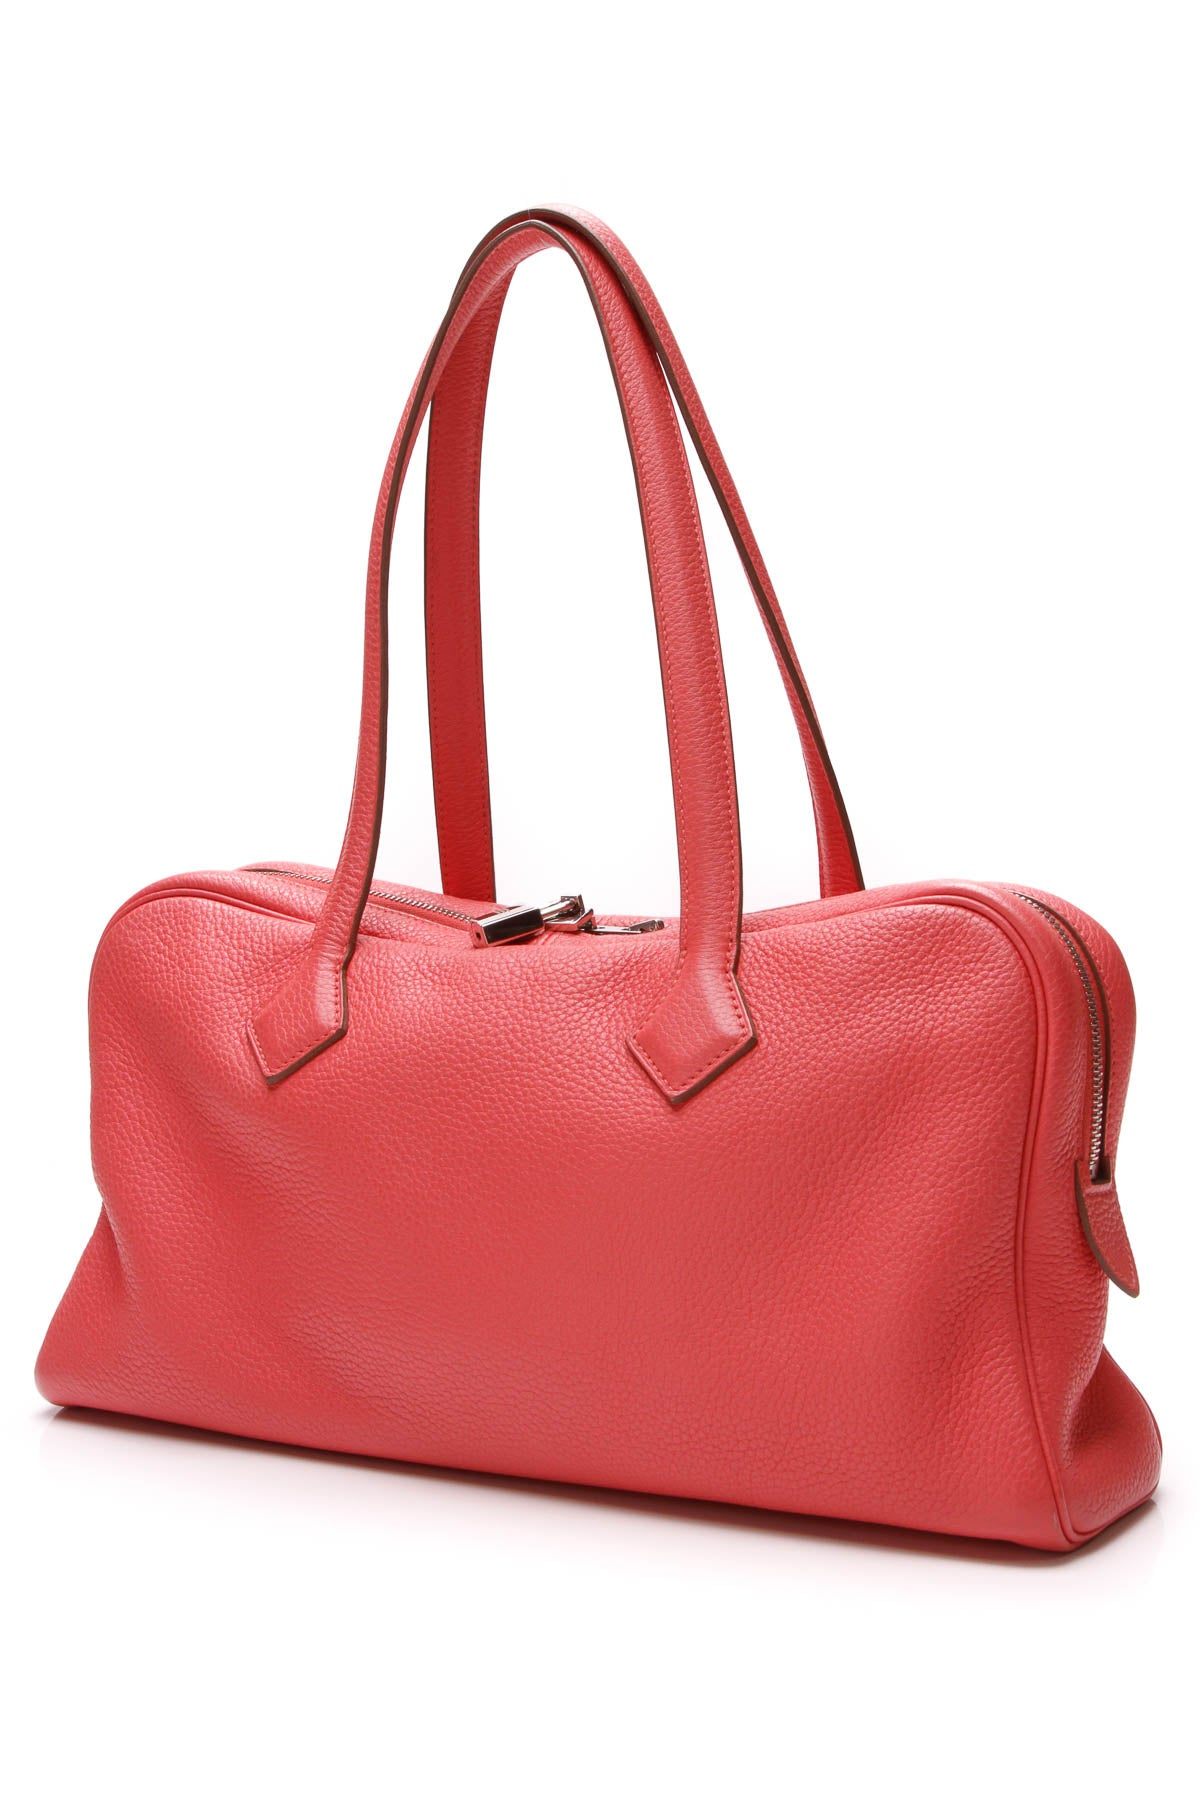 ff5075a6f7f14 Hermes Victoria Elan 38 Bag - Bougainvillea Clemence – Couture USA